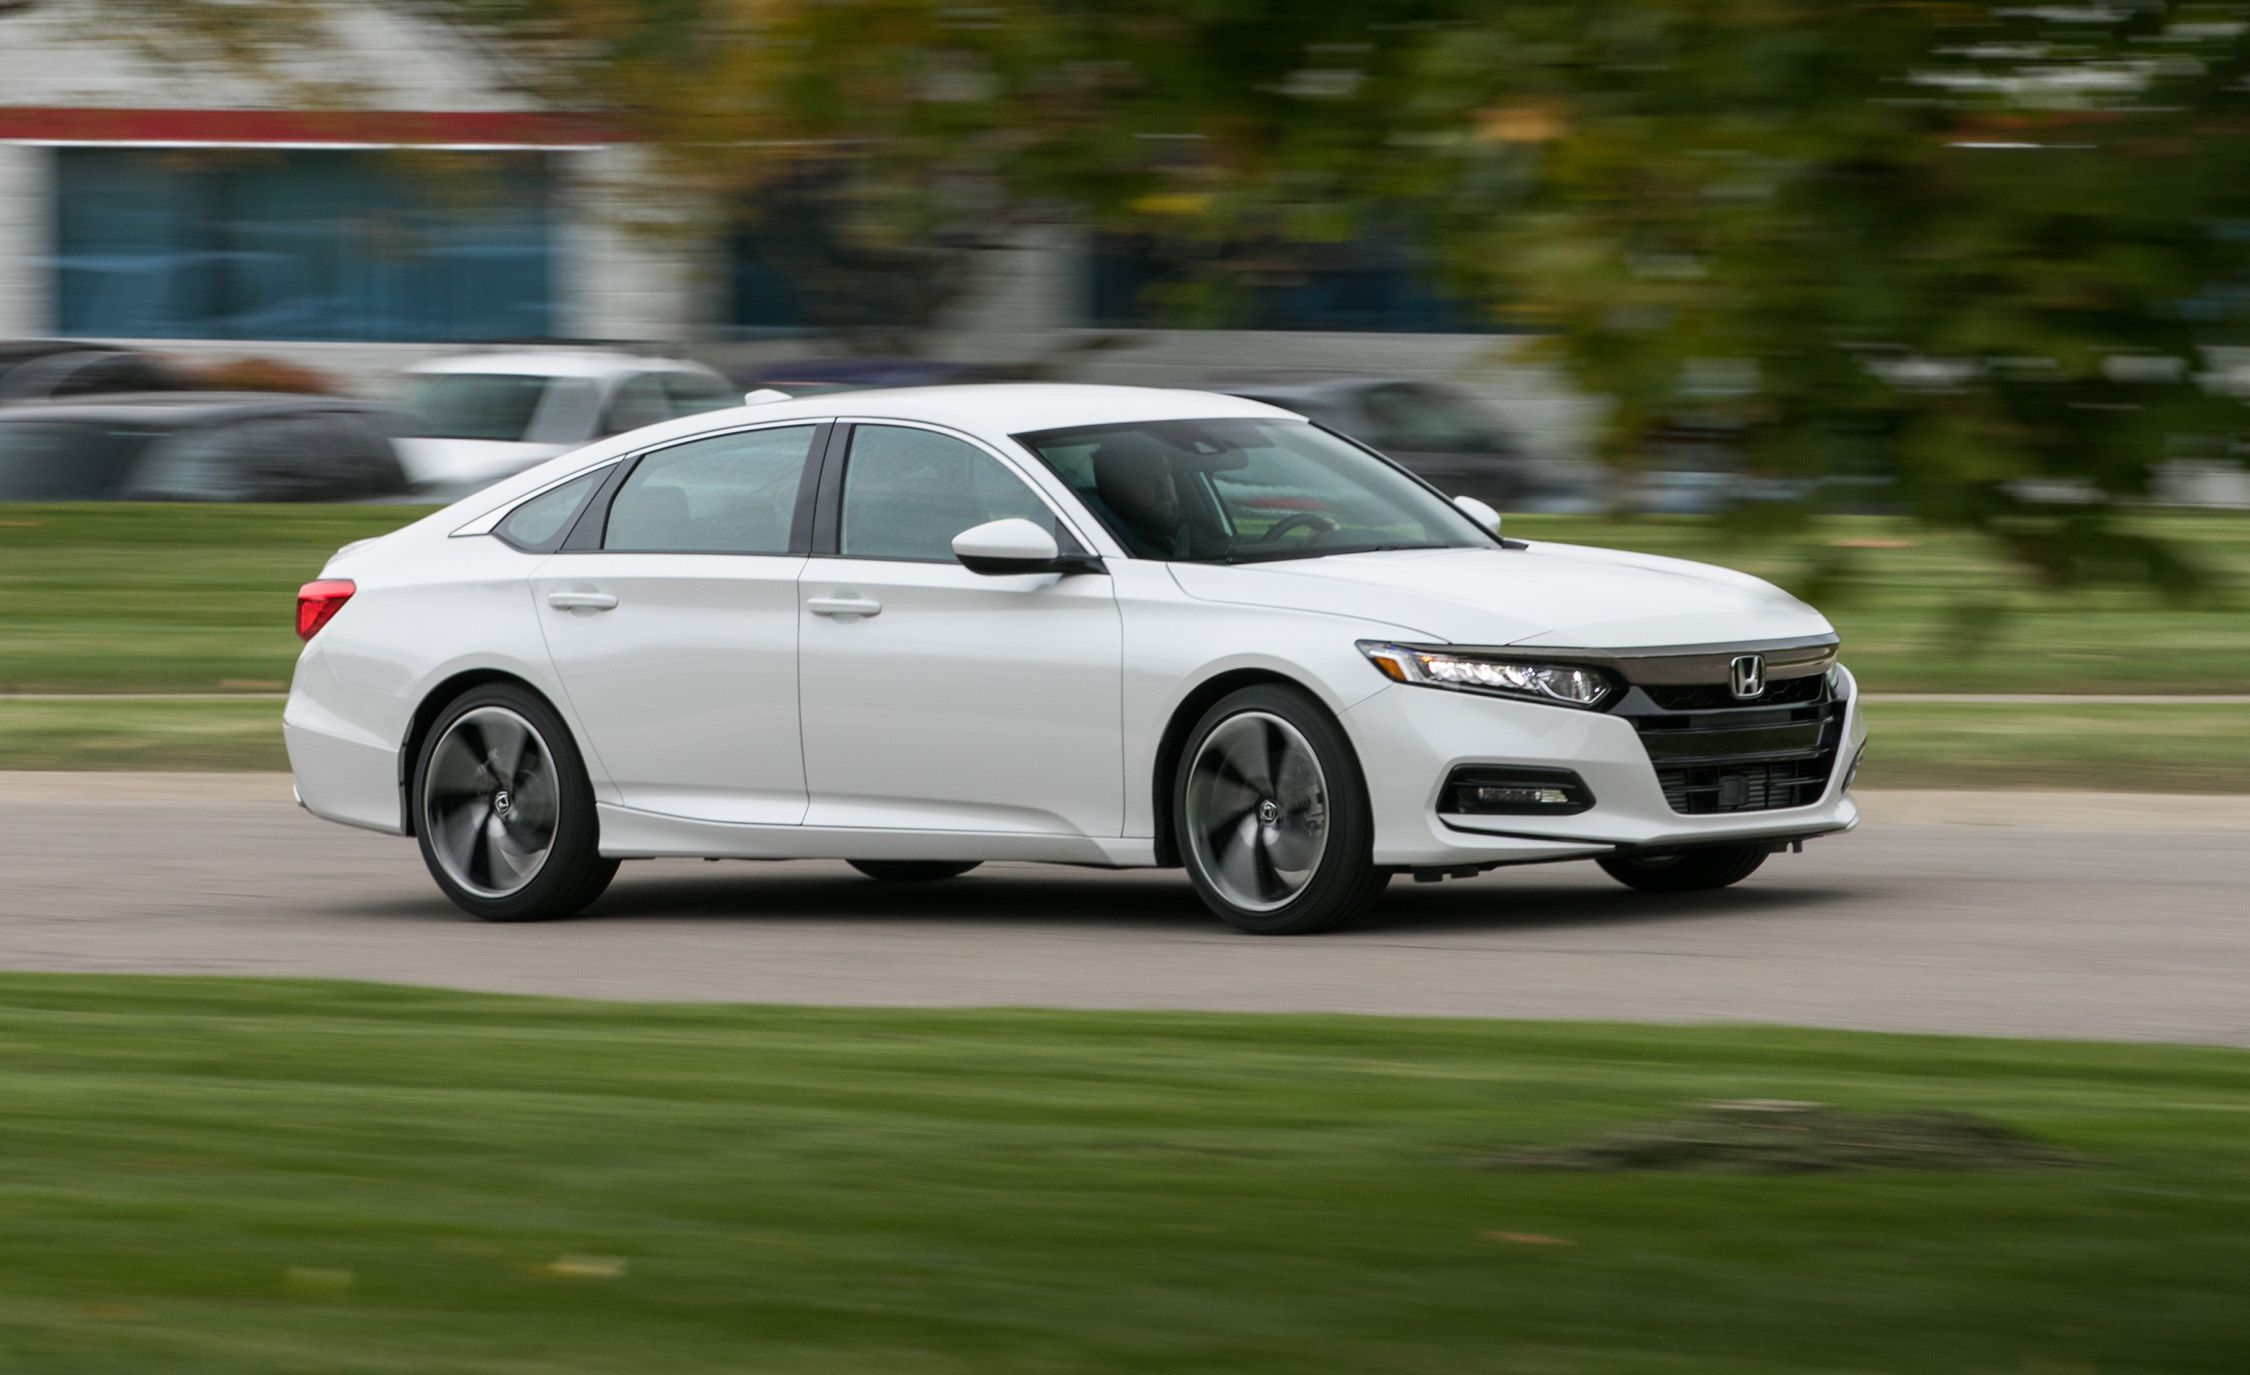 news priced sale accord from sdn hybrid today sedan on honda price and h coupe